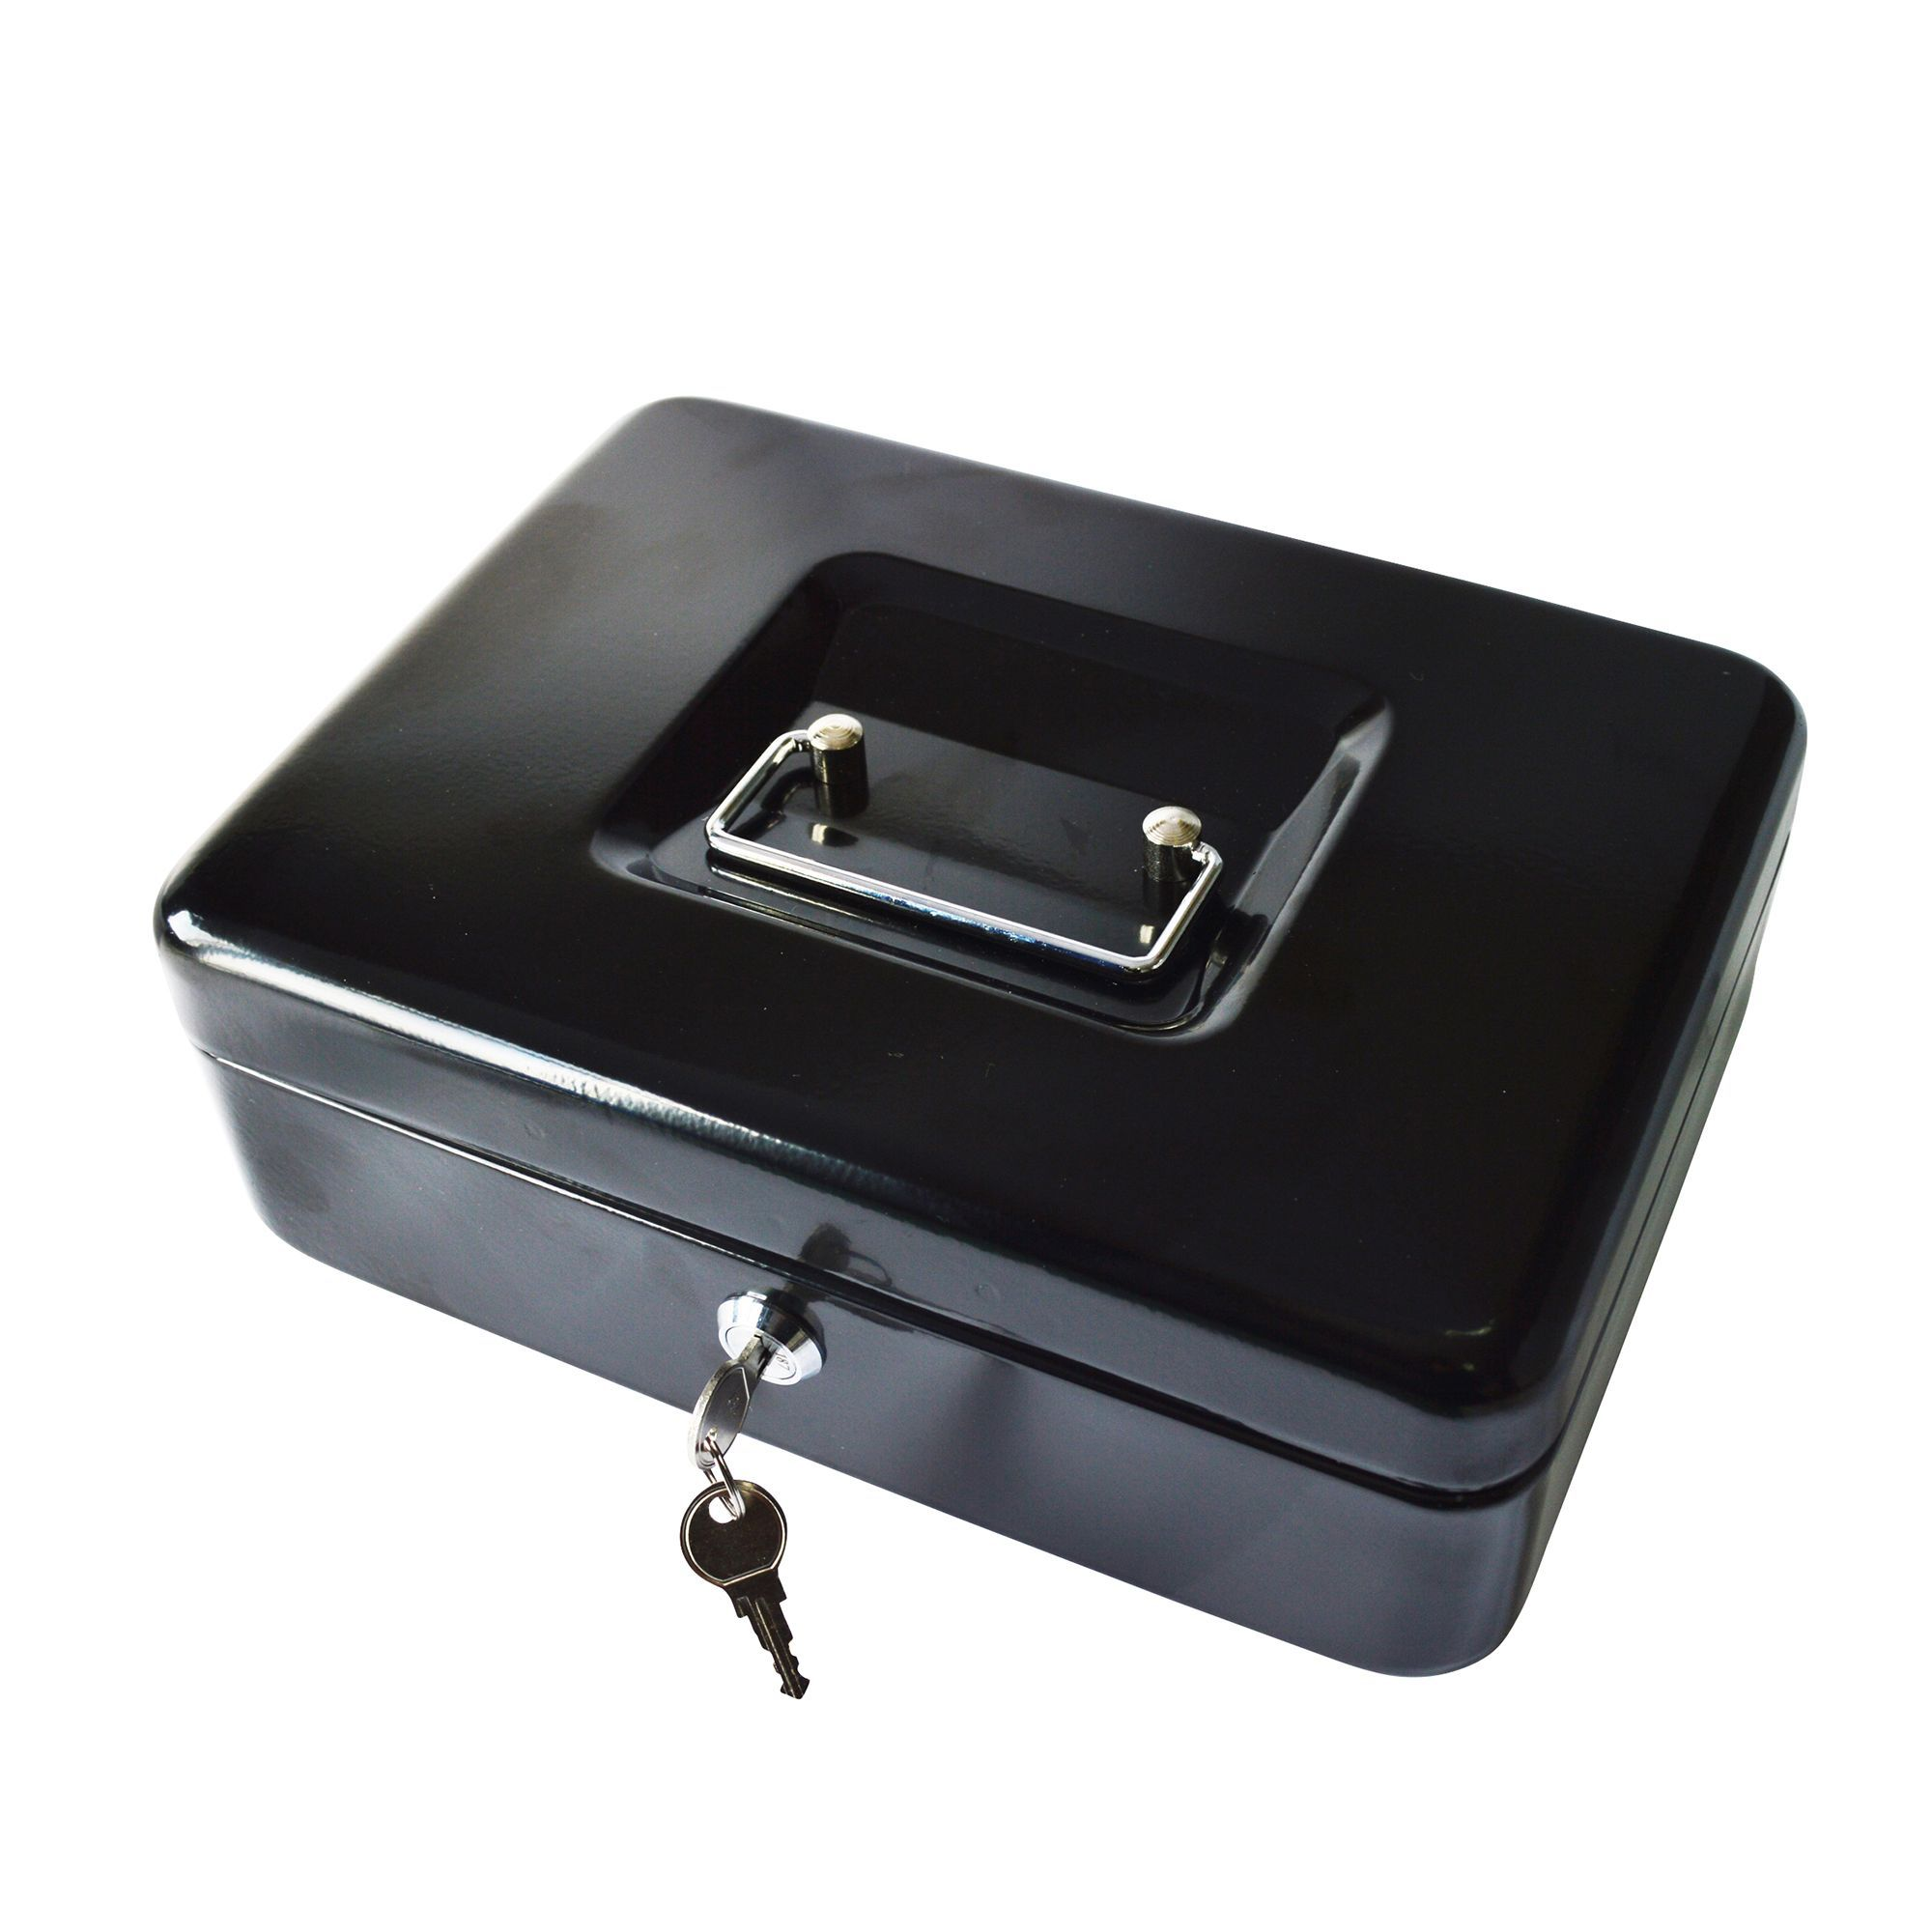 Smith & Locke Cylinder Cash box